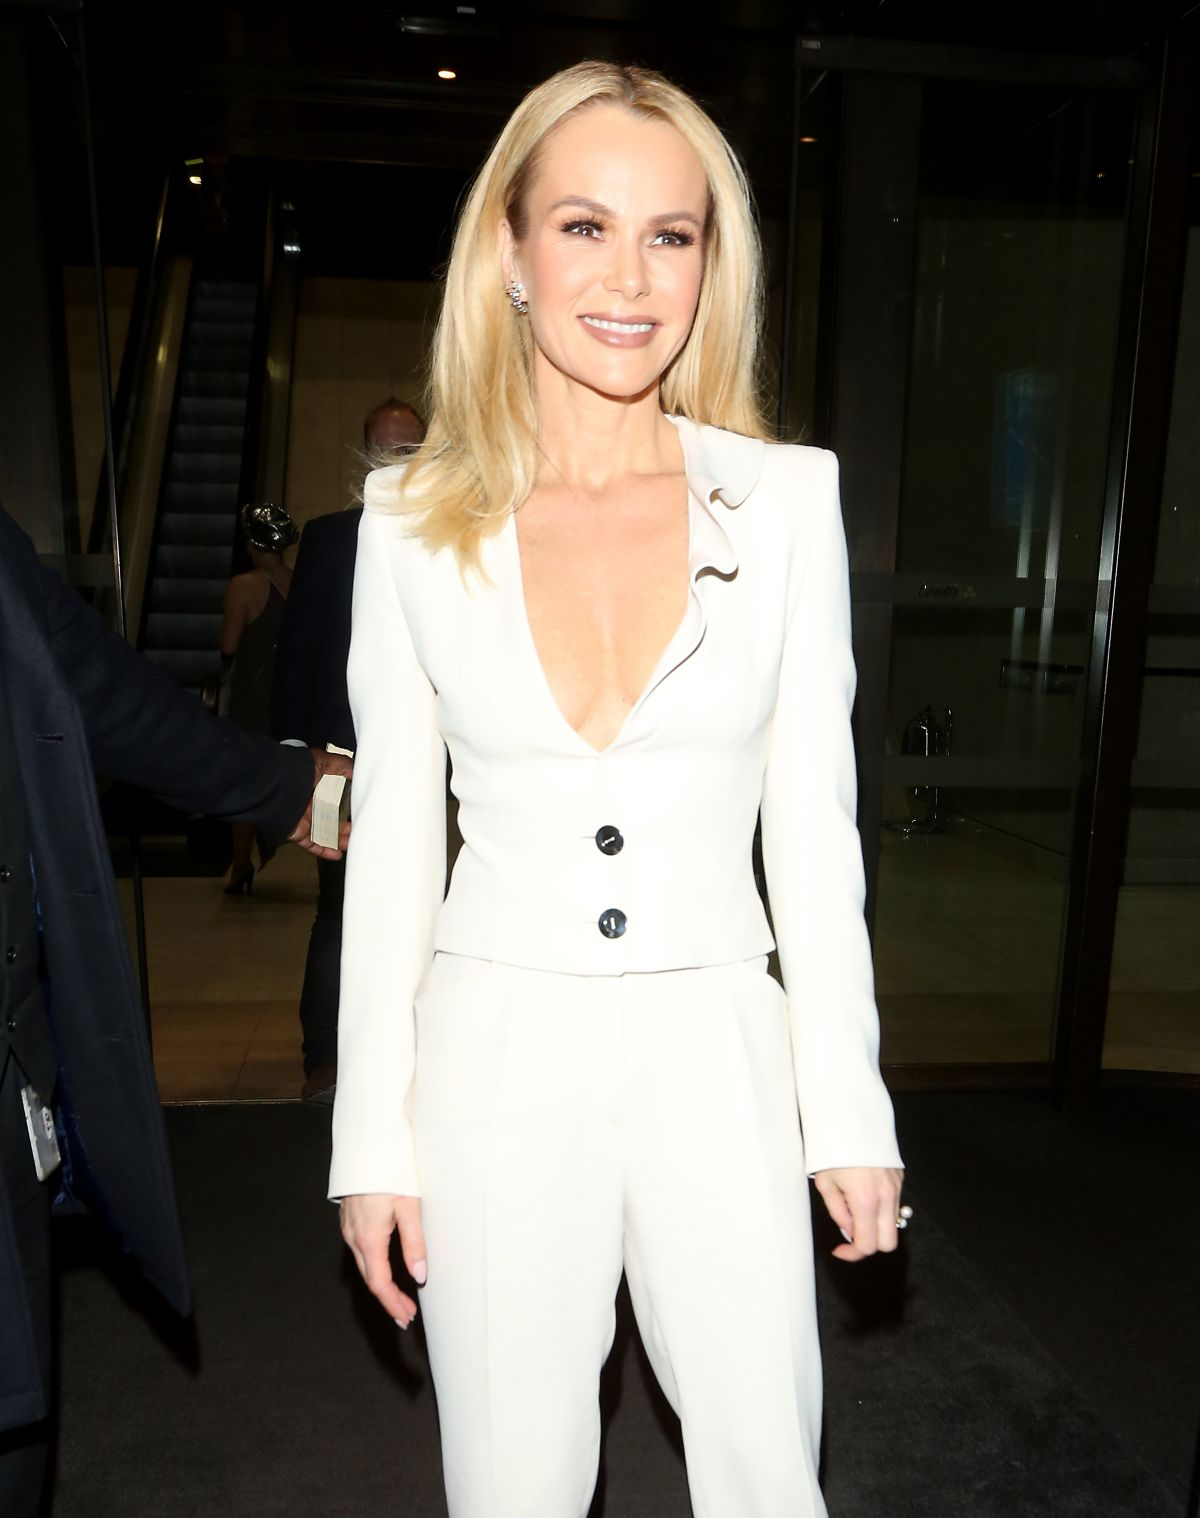 AMANDA HOLDEN at Stepping Out Theatre Afterparty in London 03/14/2017